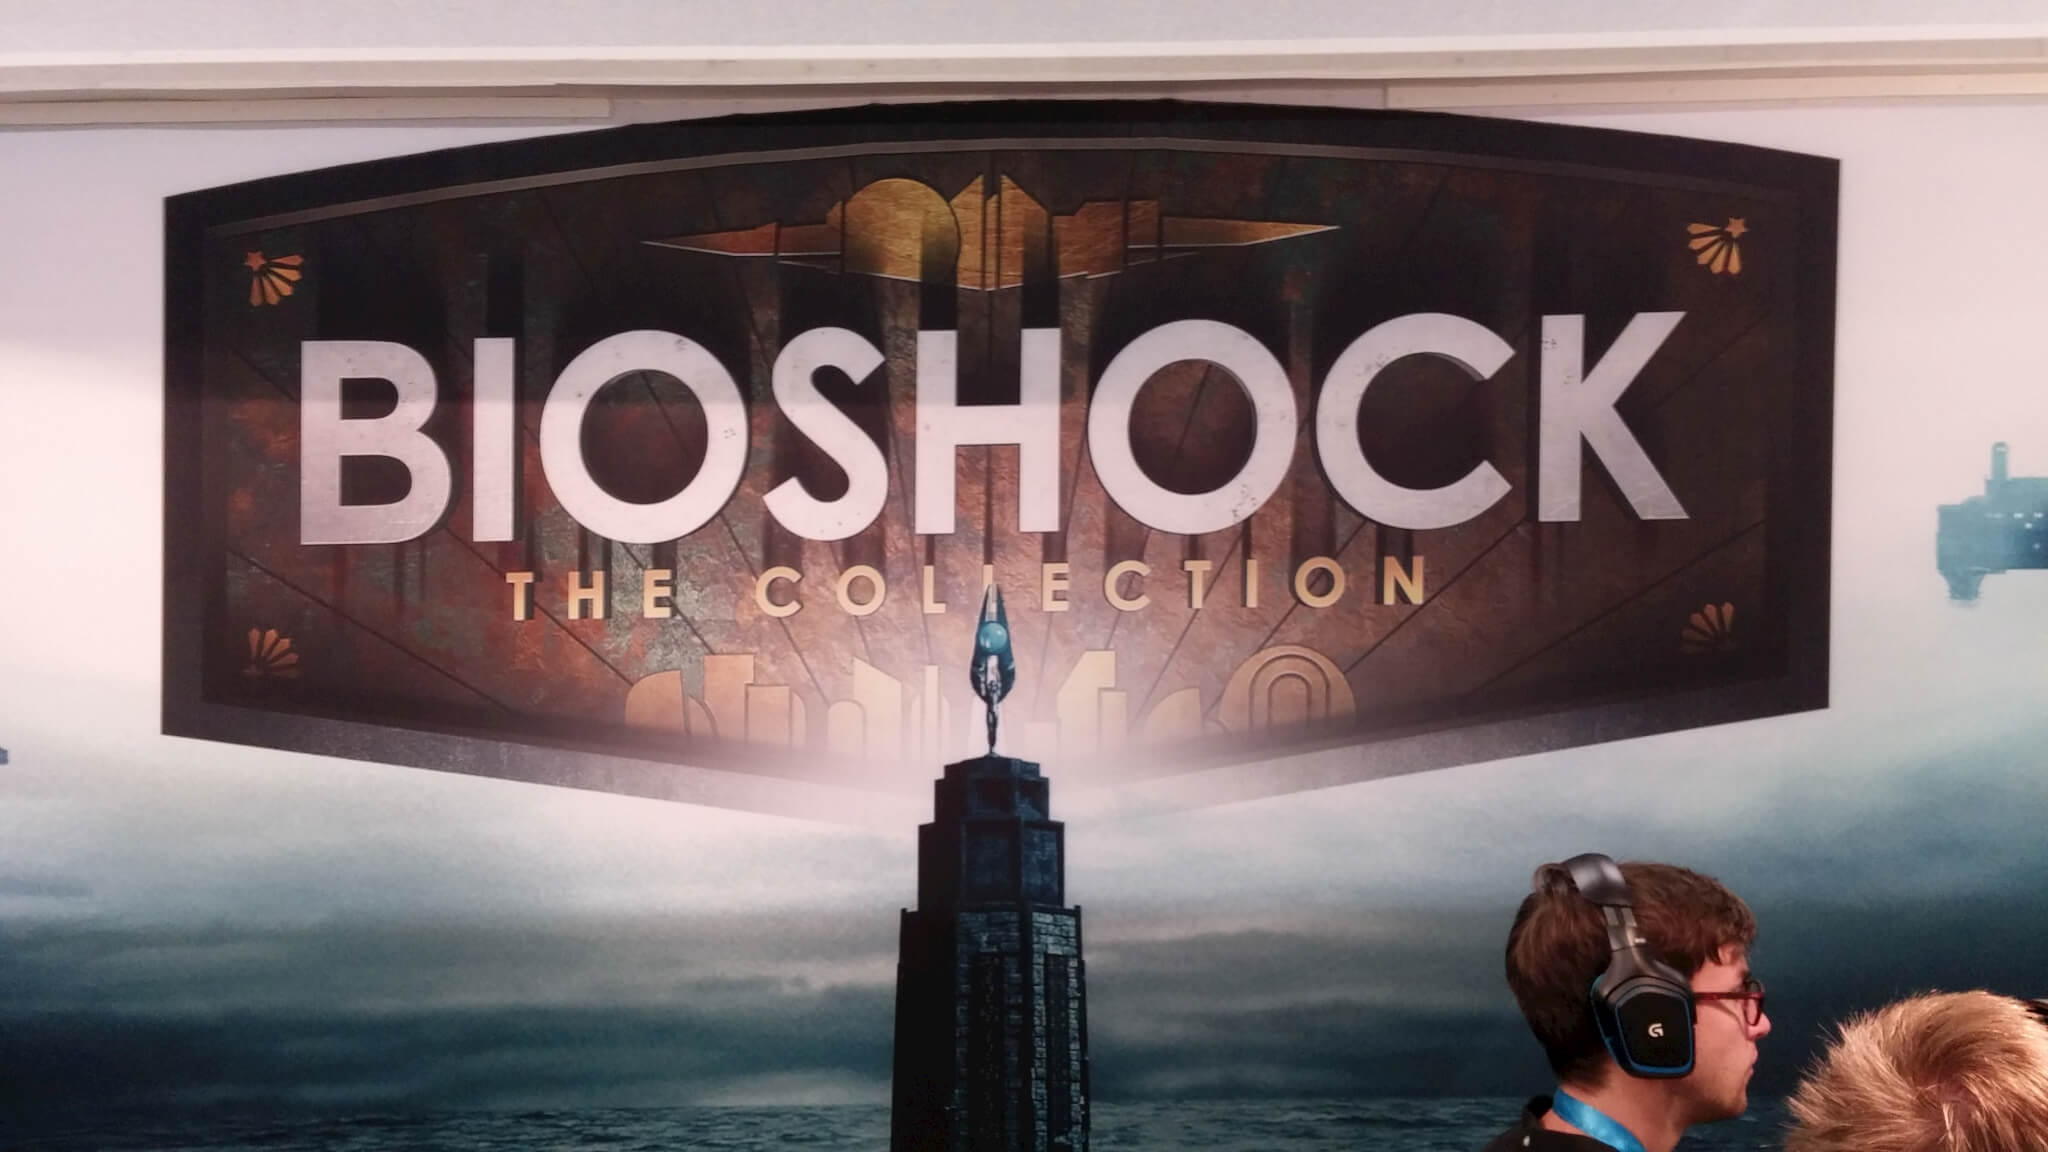 BioShock: The Collection gamescom 2016